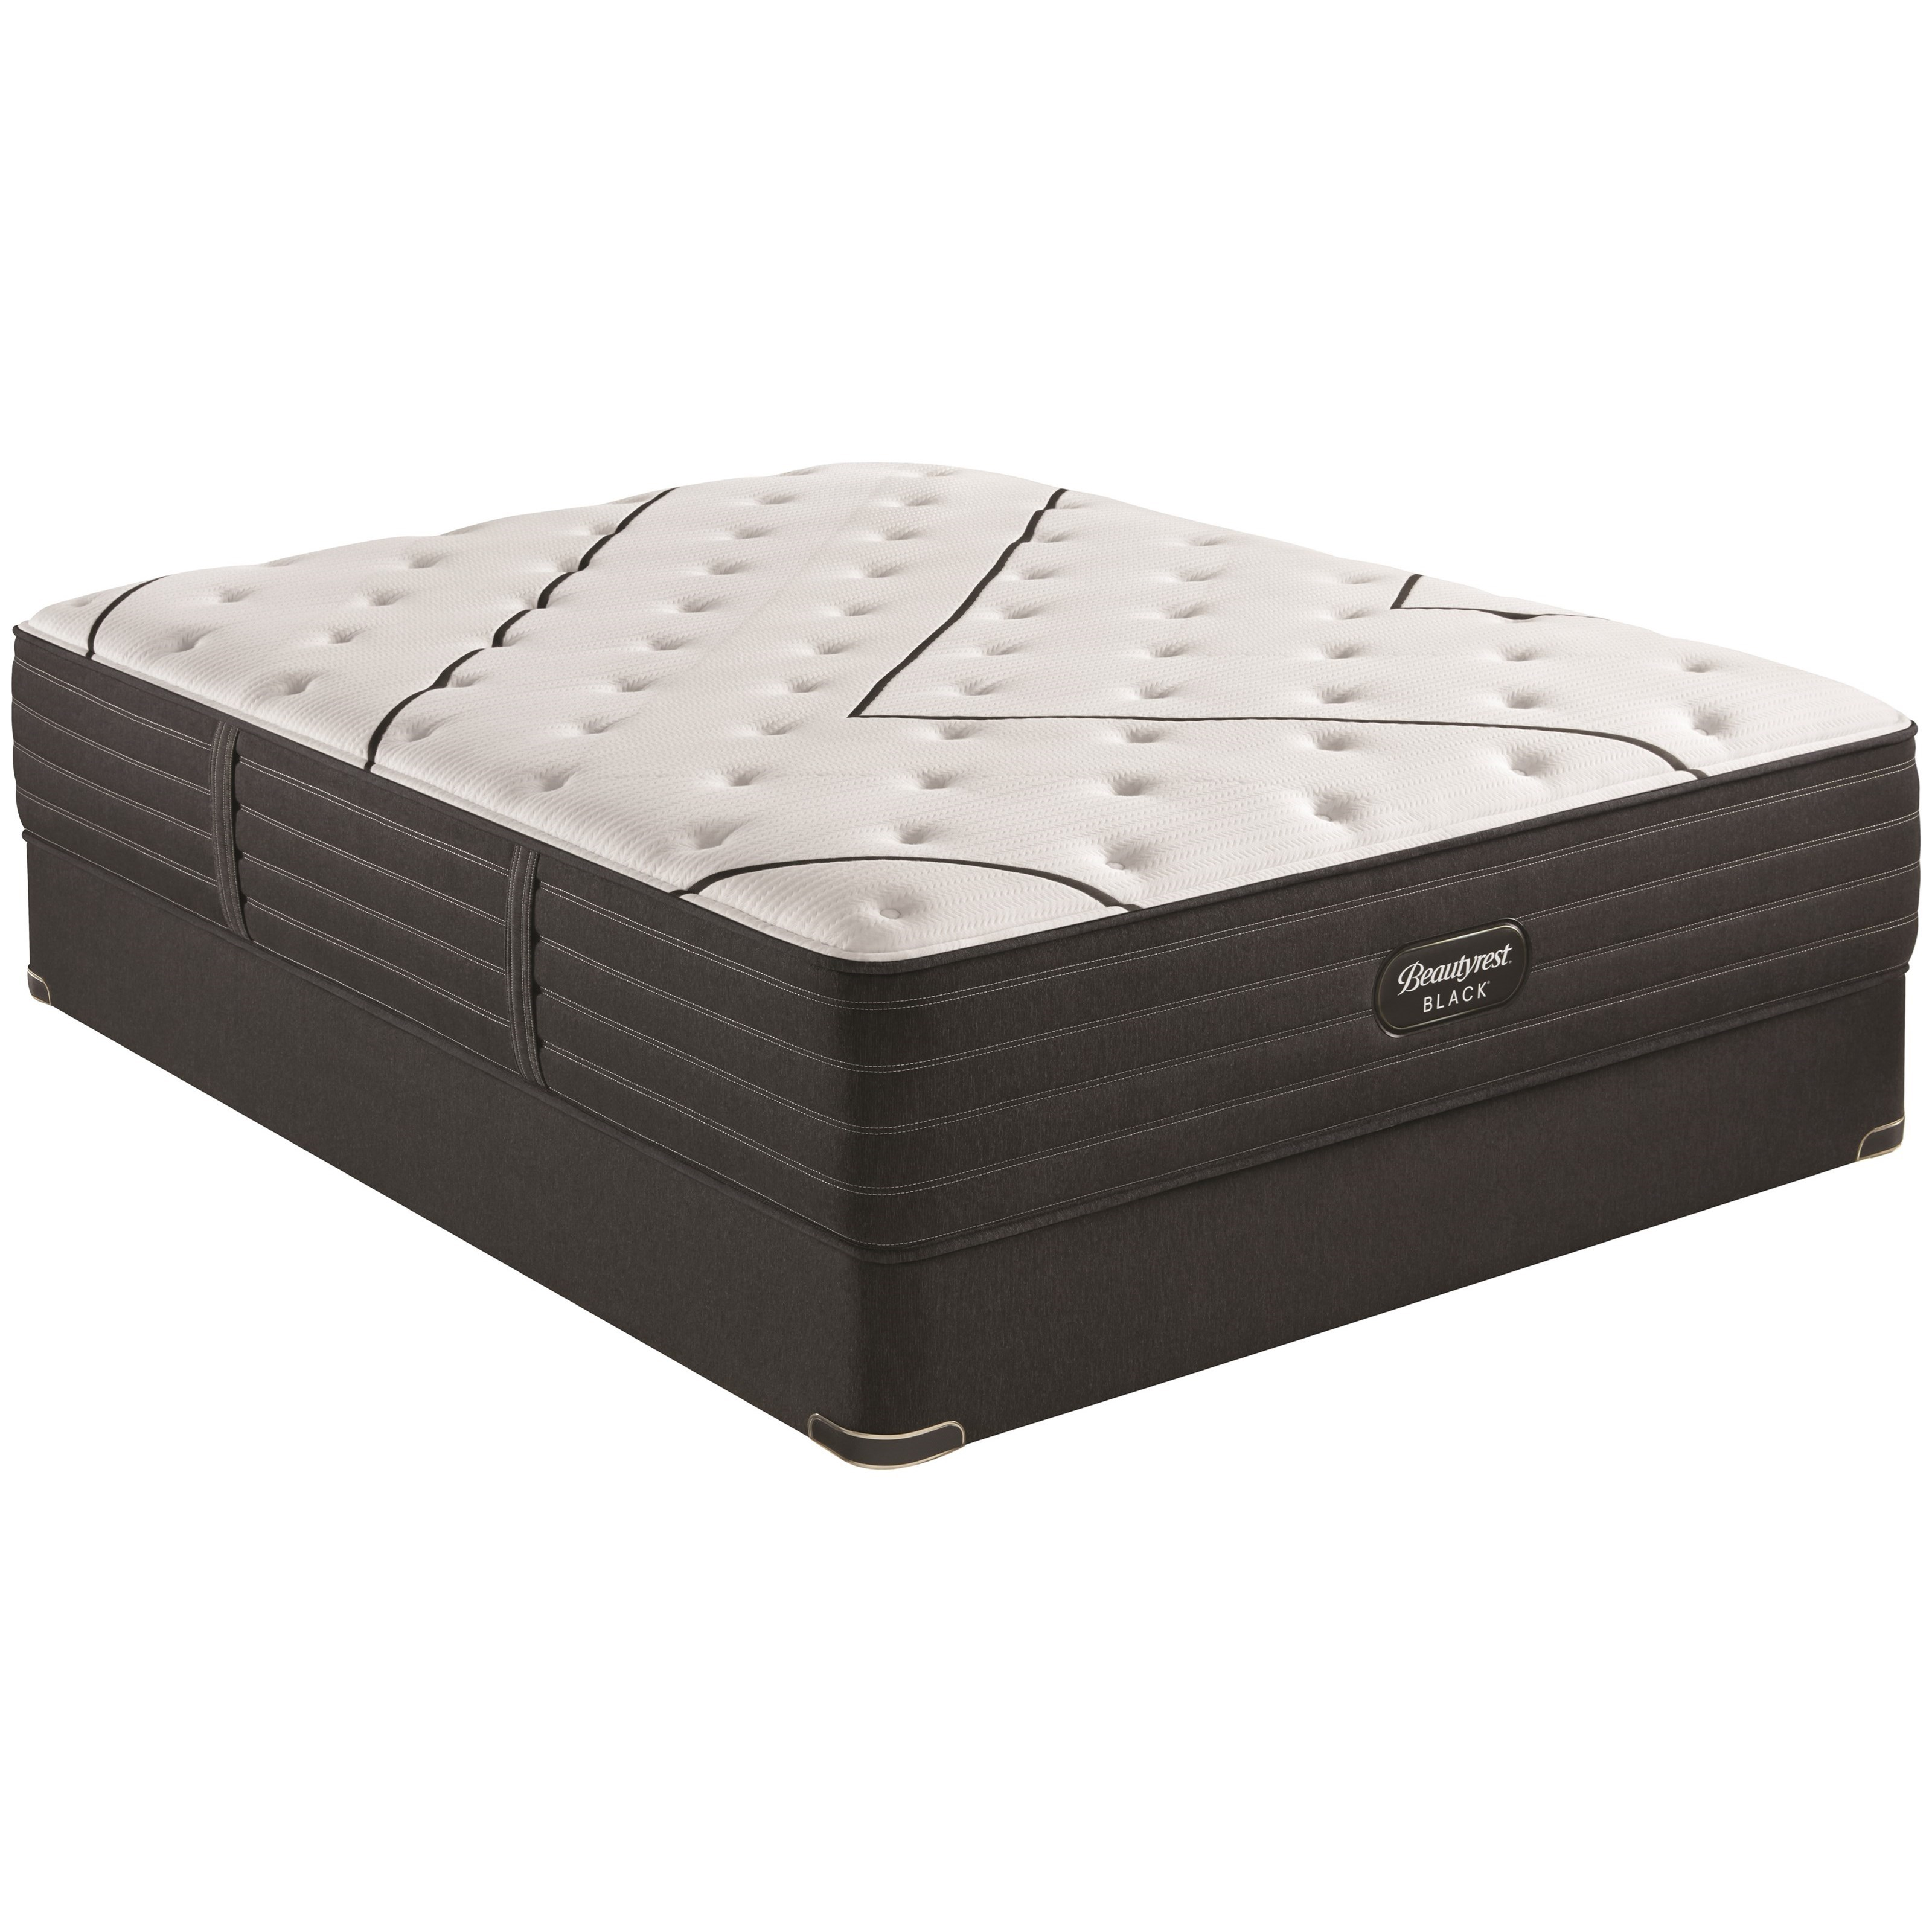 "Full 14 1/4"" Premium Mattress Set"